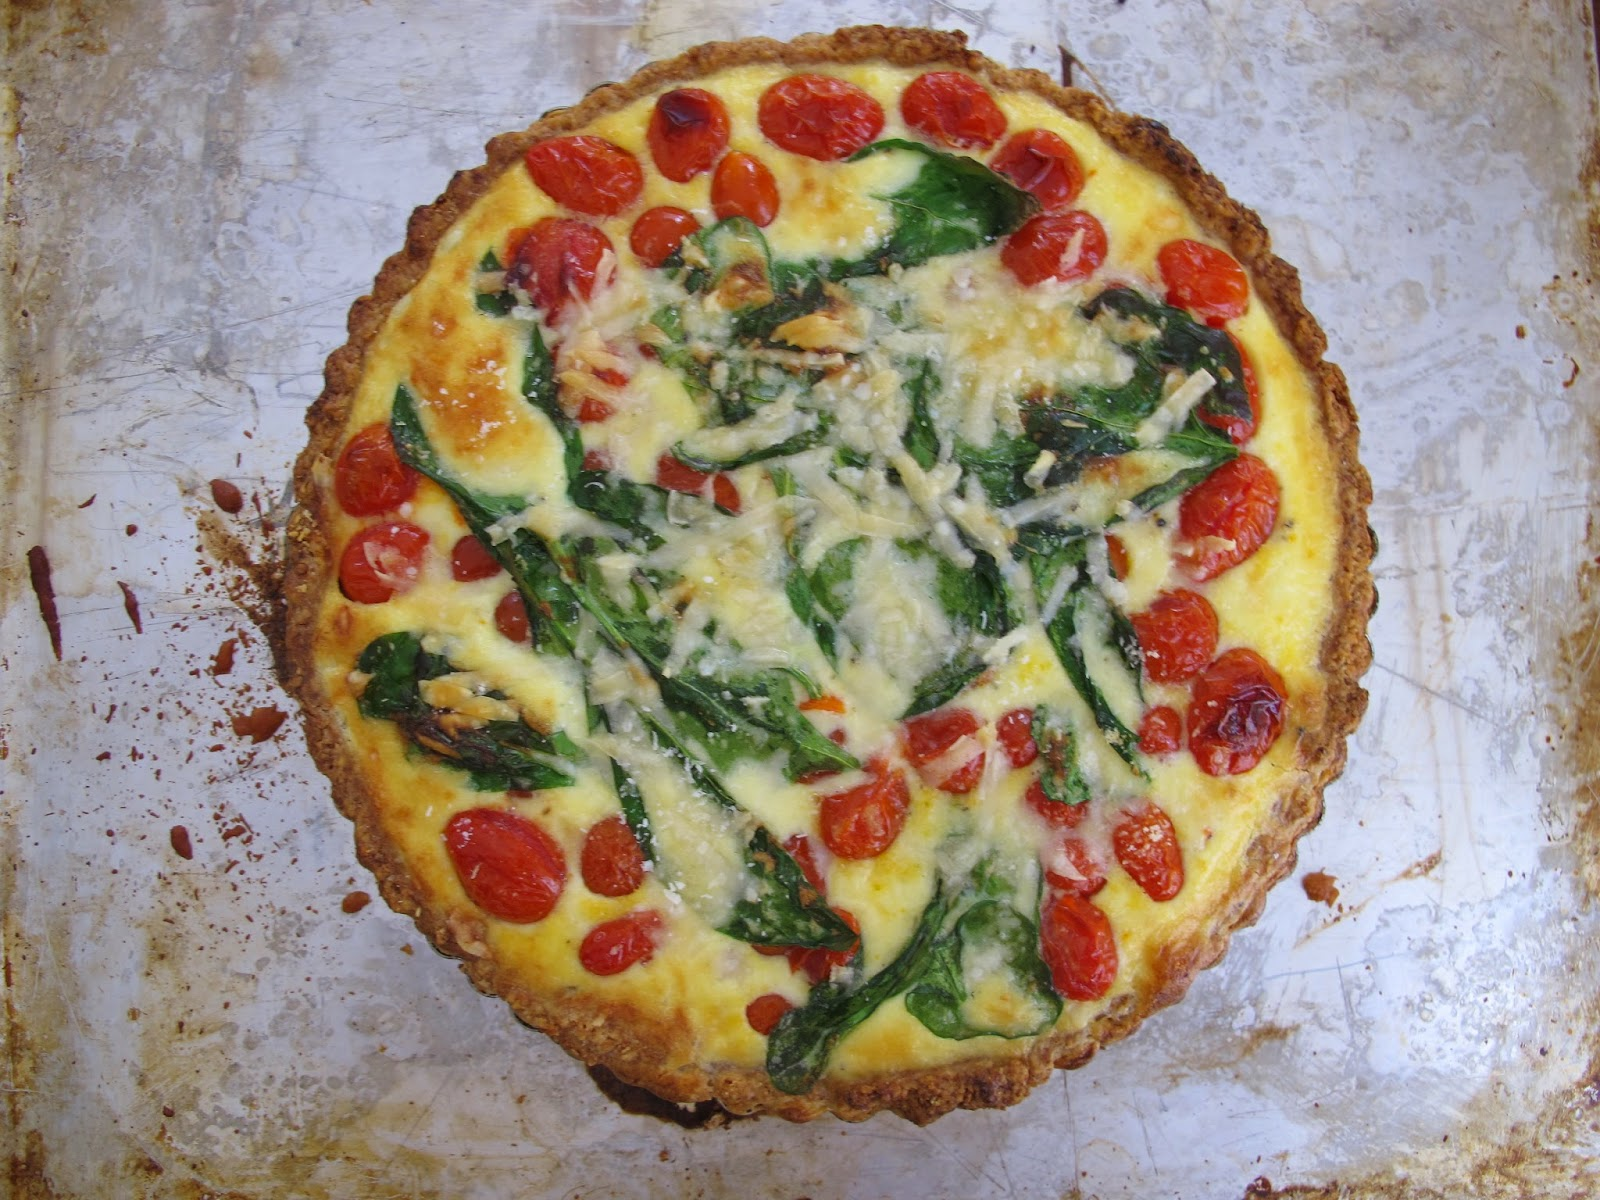 Huckleberry Corn, Cherry Tomato, & Spinach Quiche